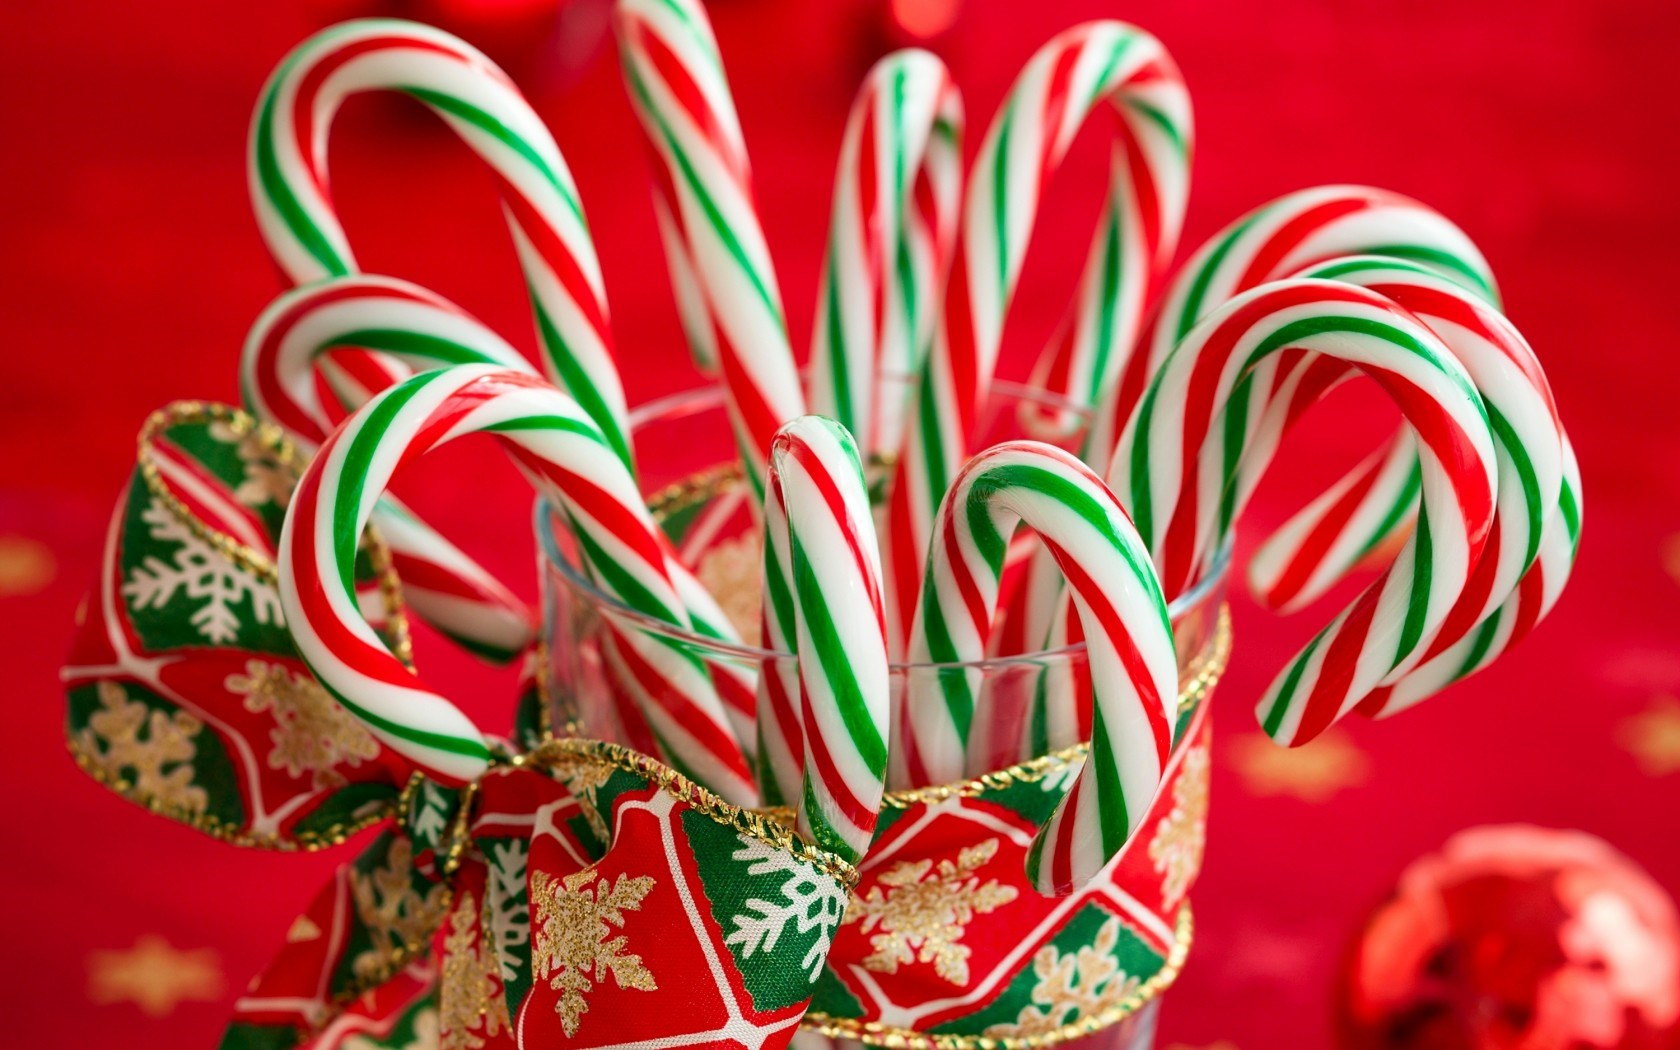 6970771-candy-canes-striped-christmas-new-year-holiday